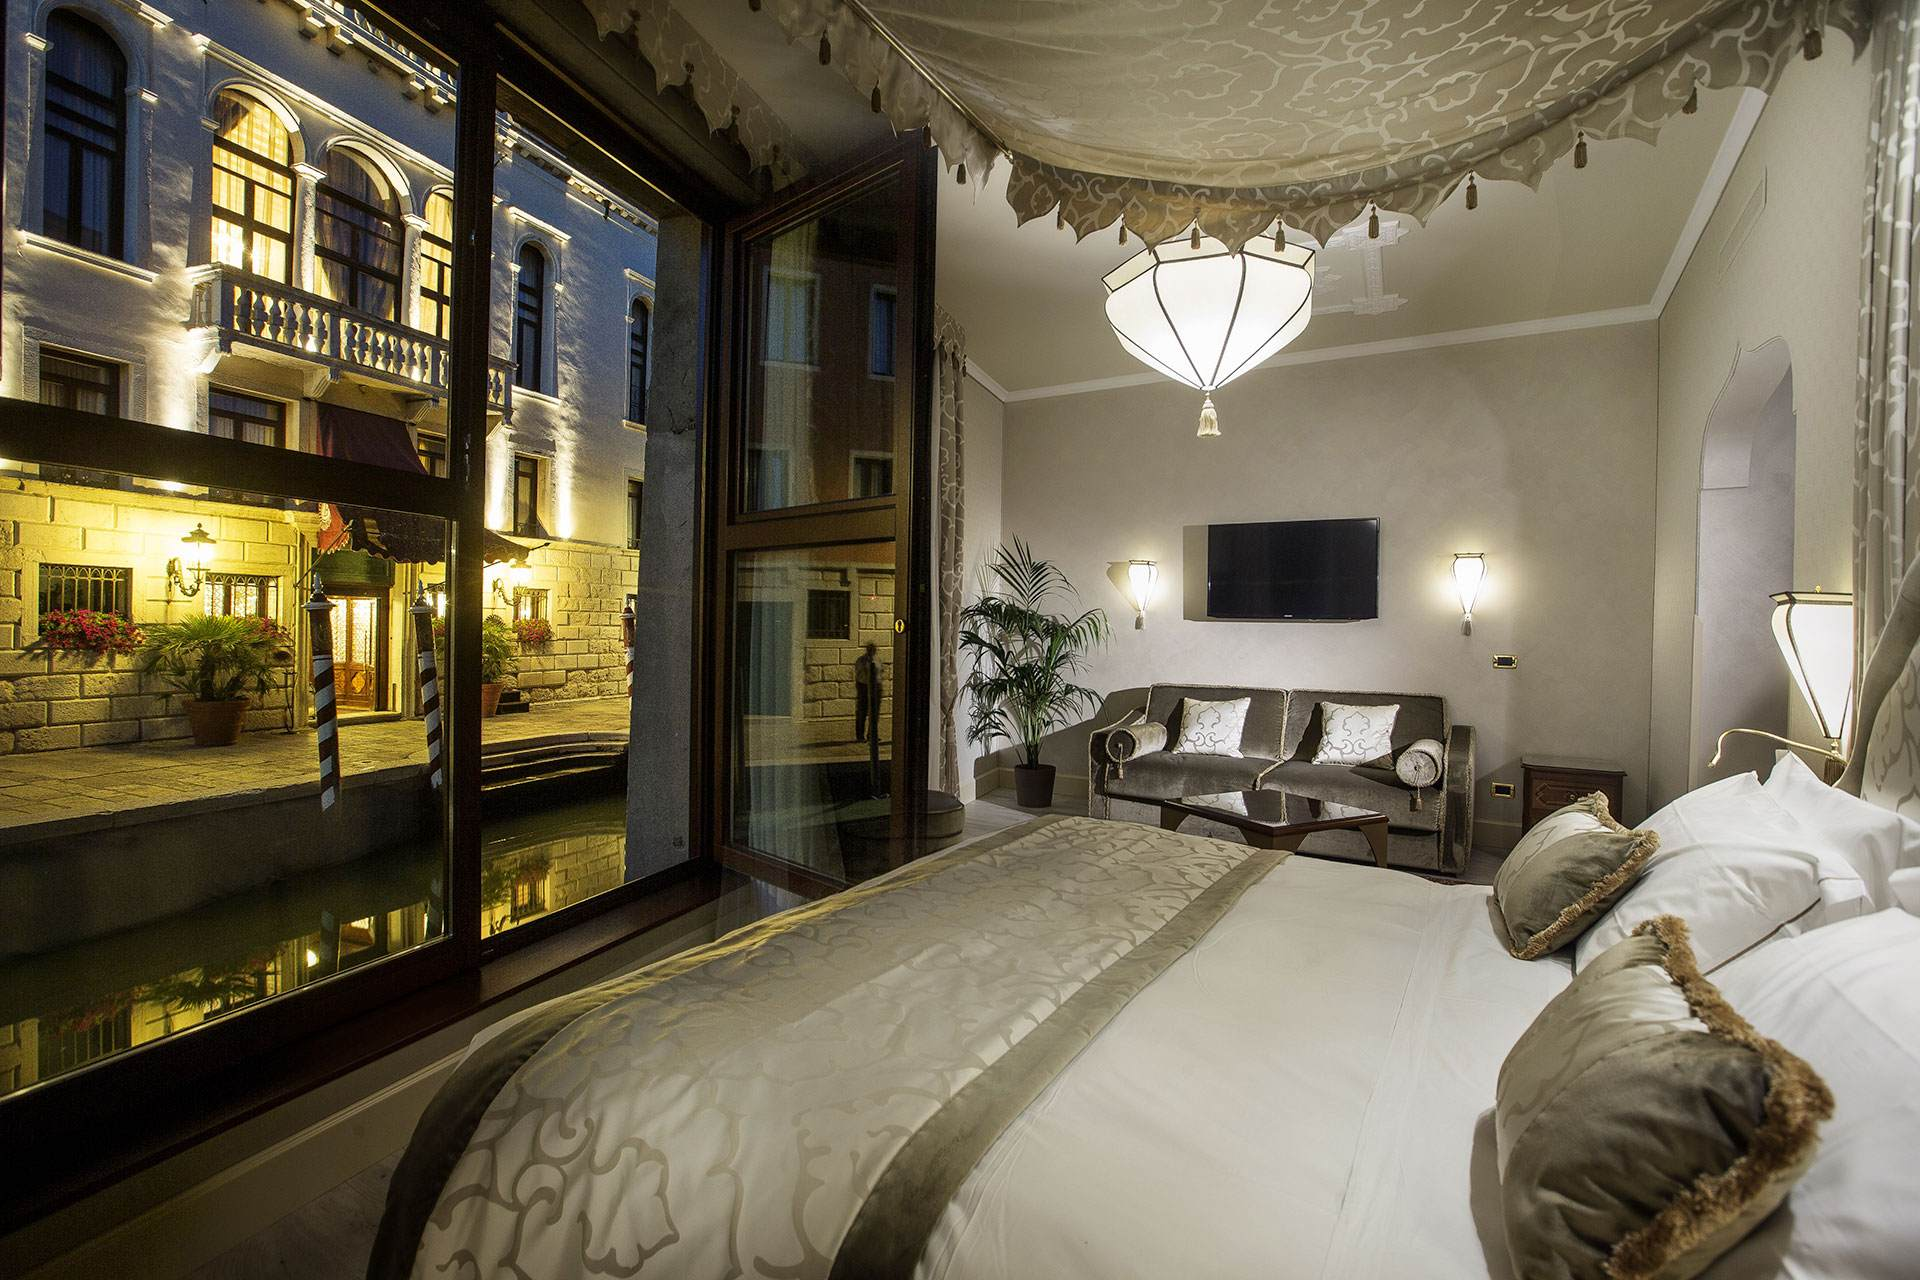 Venice hotel near ghetto hotel ai mori d oriente for Design boutique hotel venice